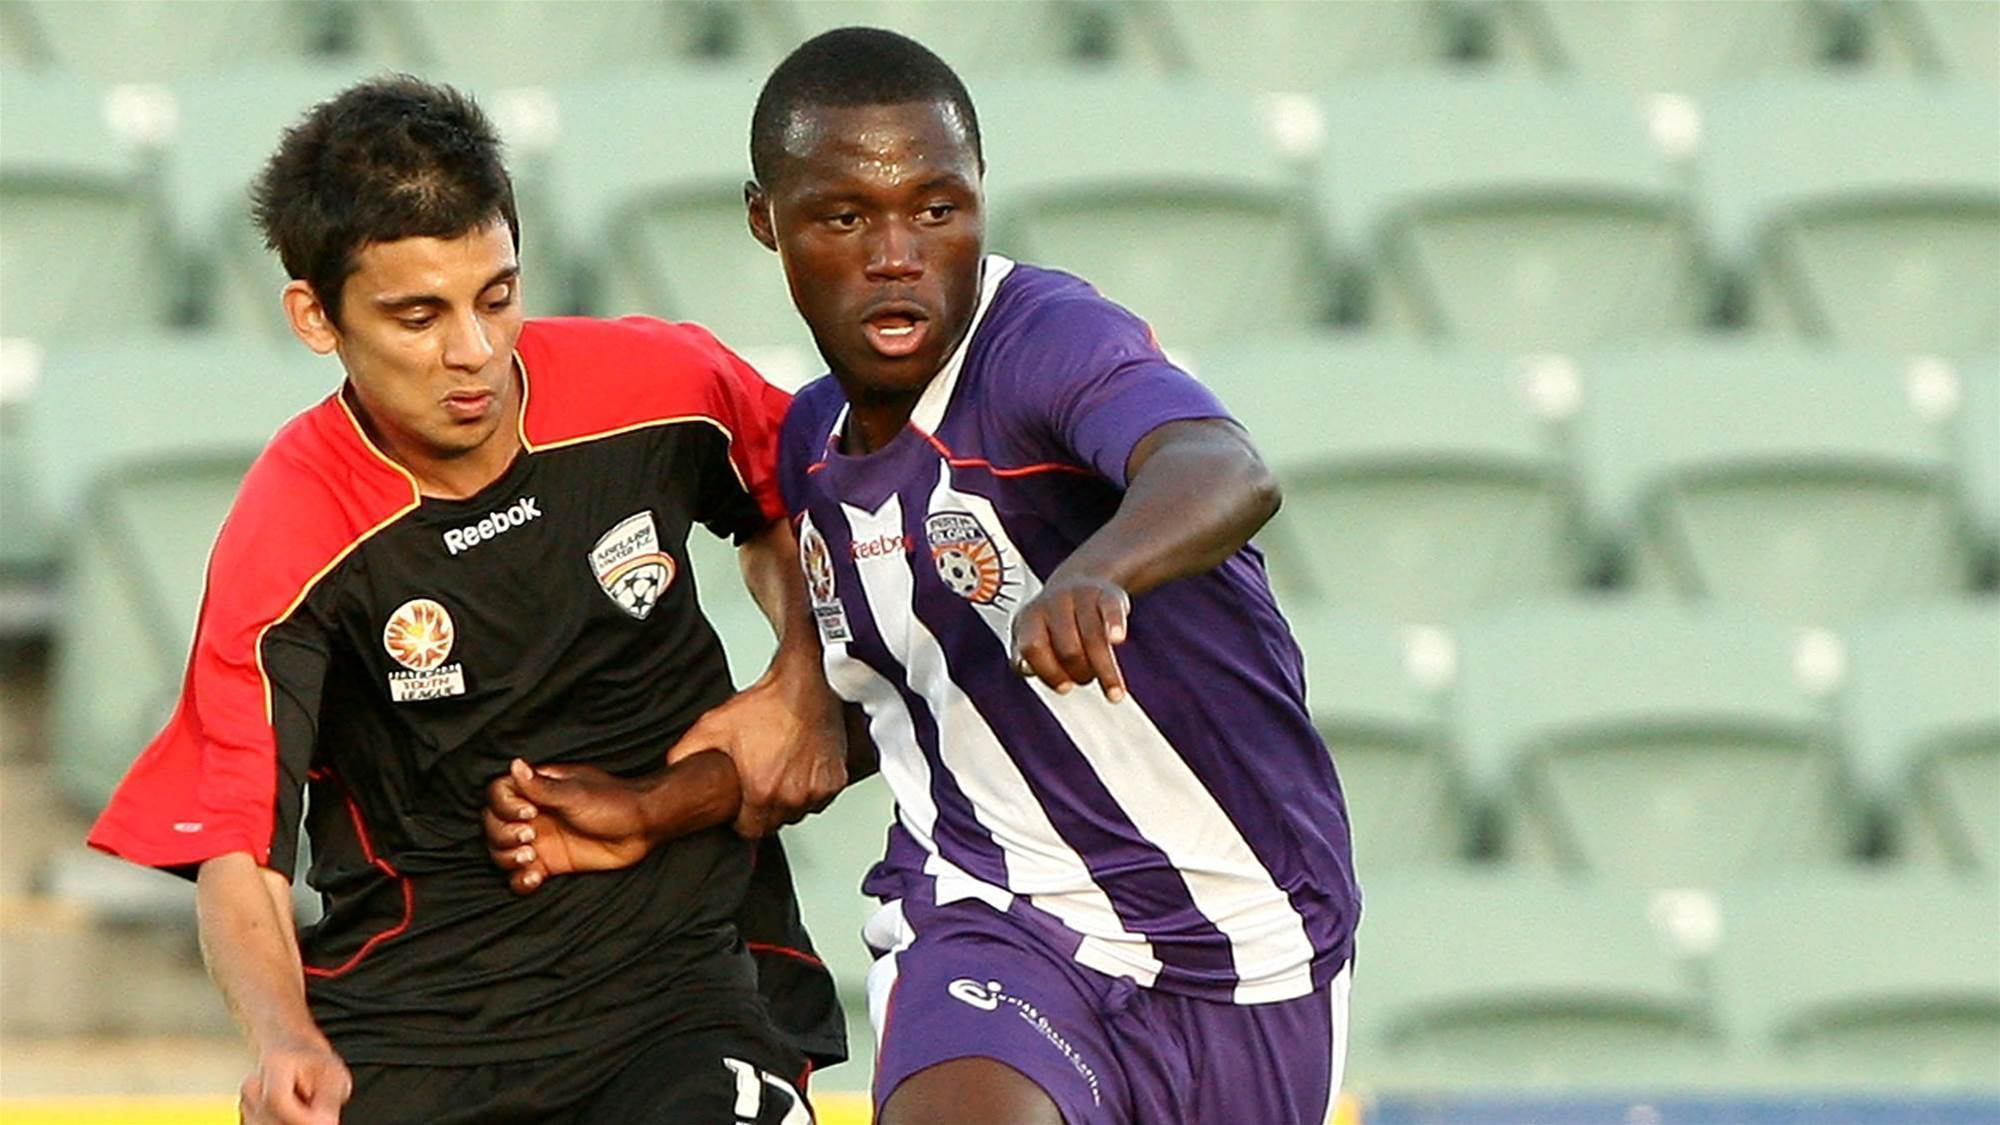 Former Glory player jailed for fraud